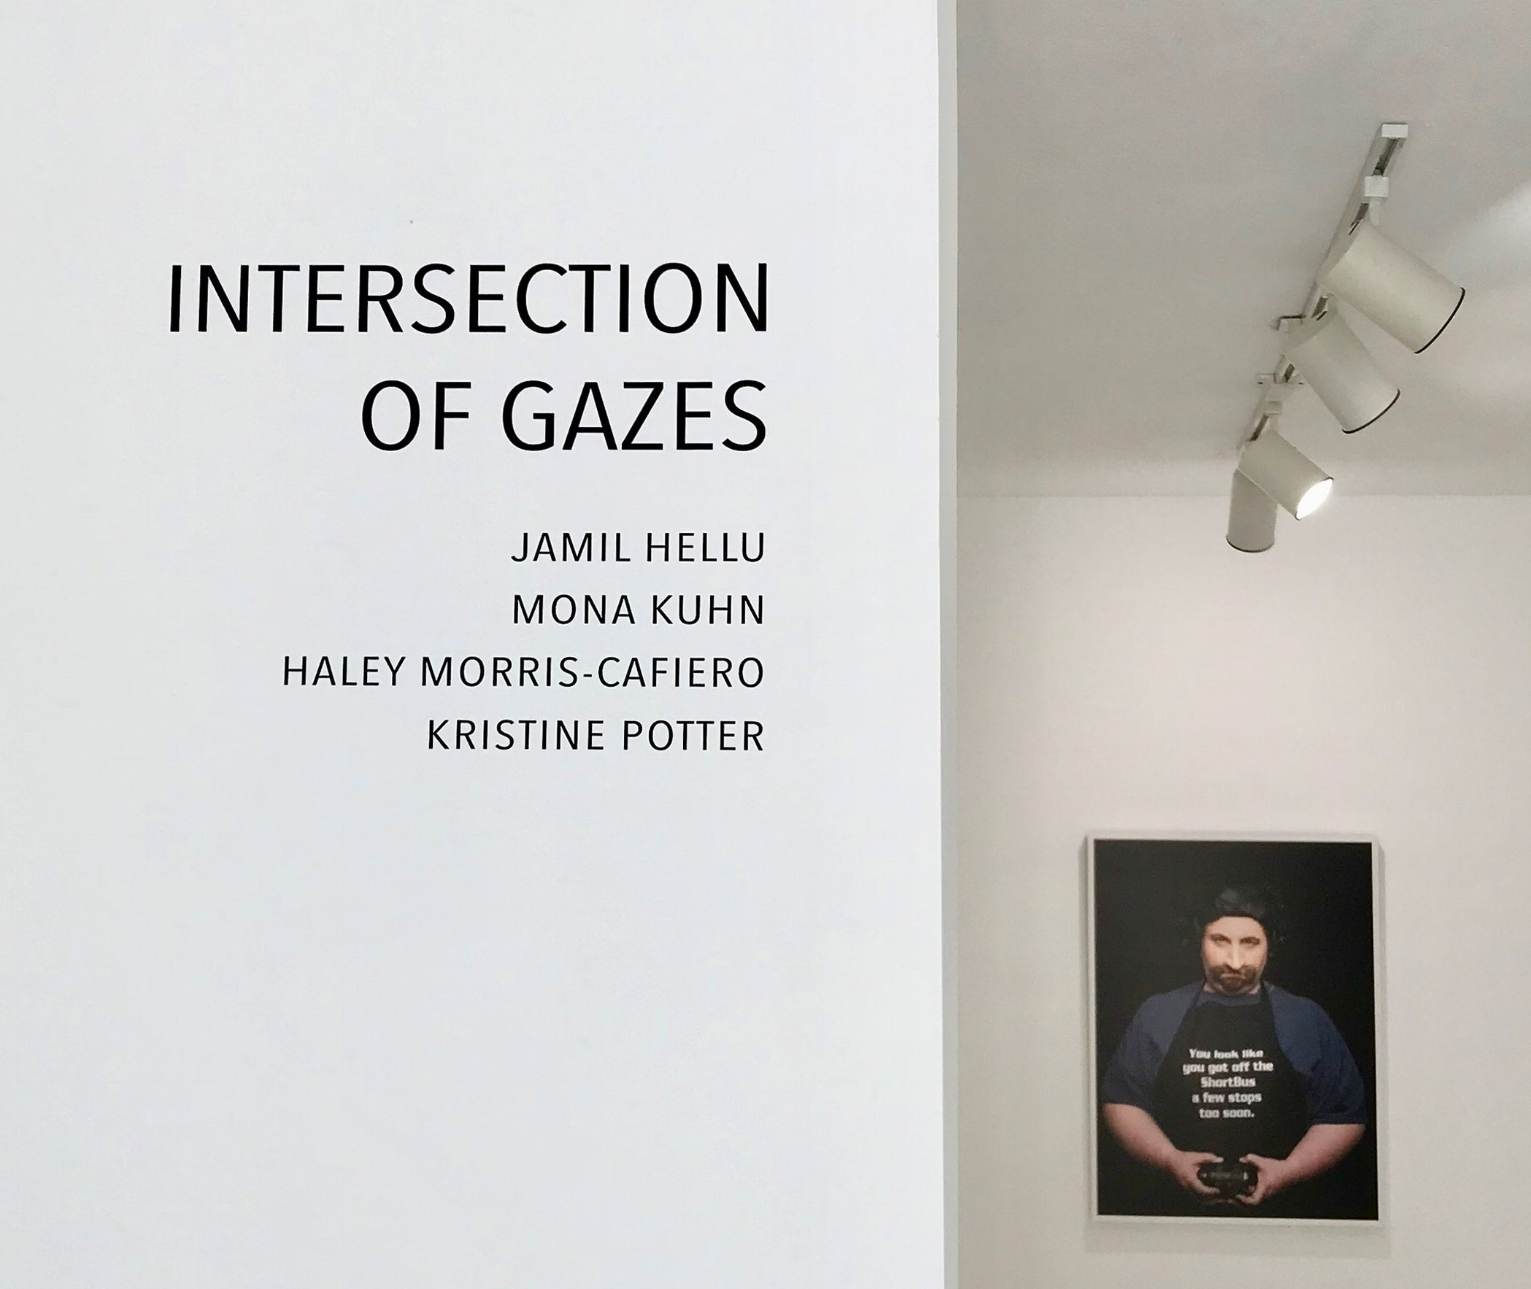 INTERSECTION OF GAZES  Jamil Hellu, Mona Kuhn, Haley Morris-Cafiero, Kristine Potter September 5 - October 27, 2018  PRESS RELEASE  | EXHIBITION VIEWS